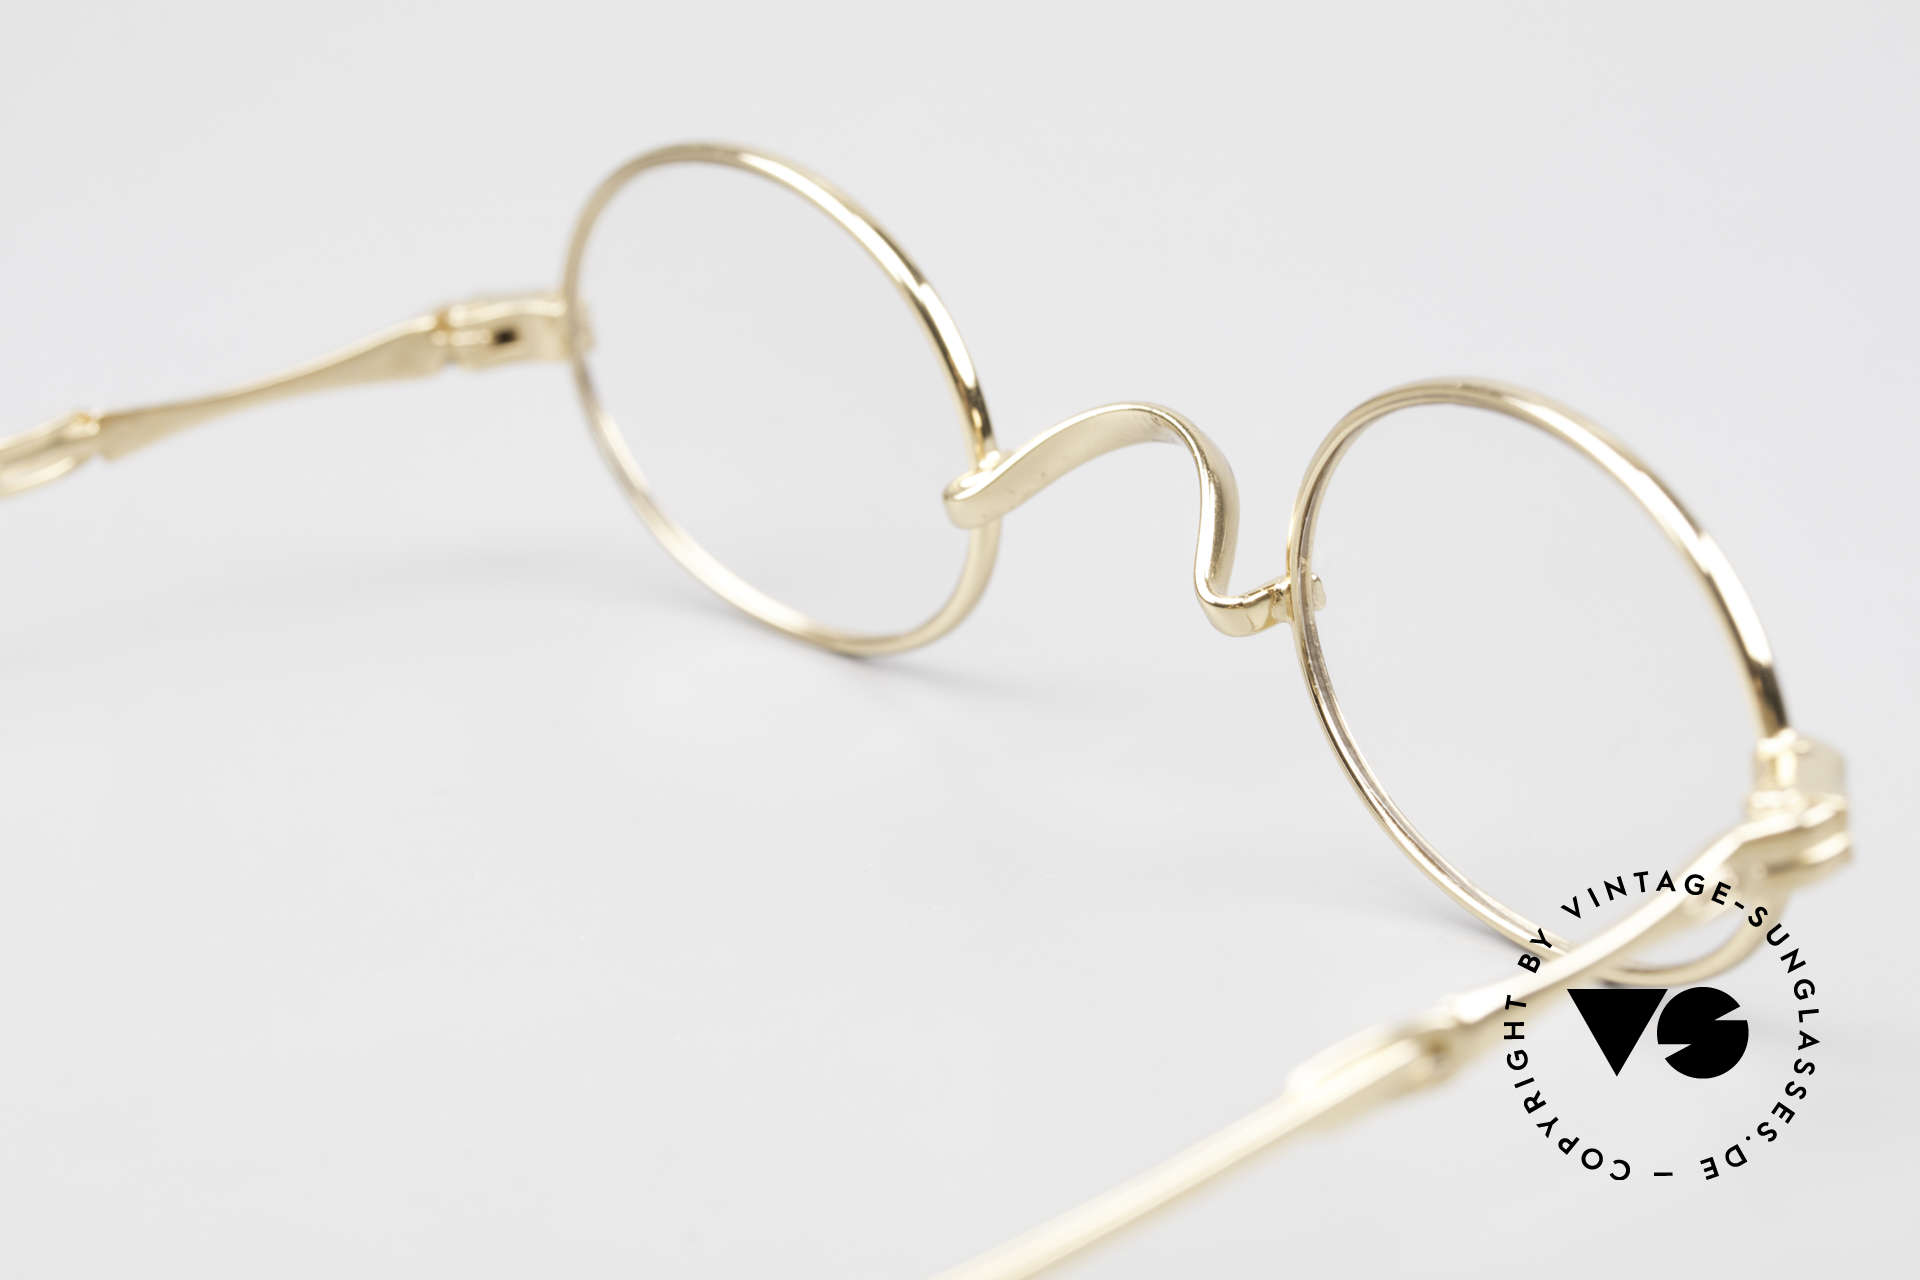 """Lunor I 04 Telescopic XS Gold Glasses Slide Temples, LUNOR = shortcut for French """"Lunette d'Or"""" (gold glasses), Made for Men and Women"""